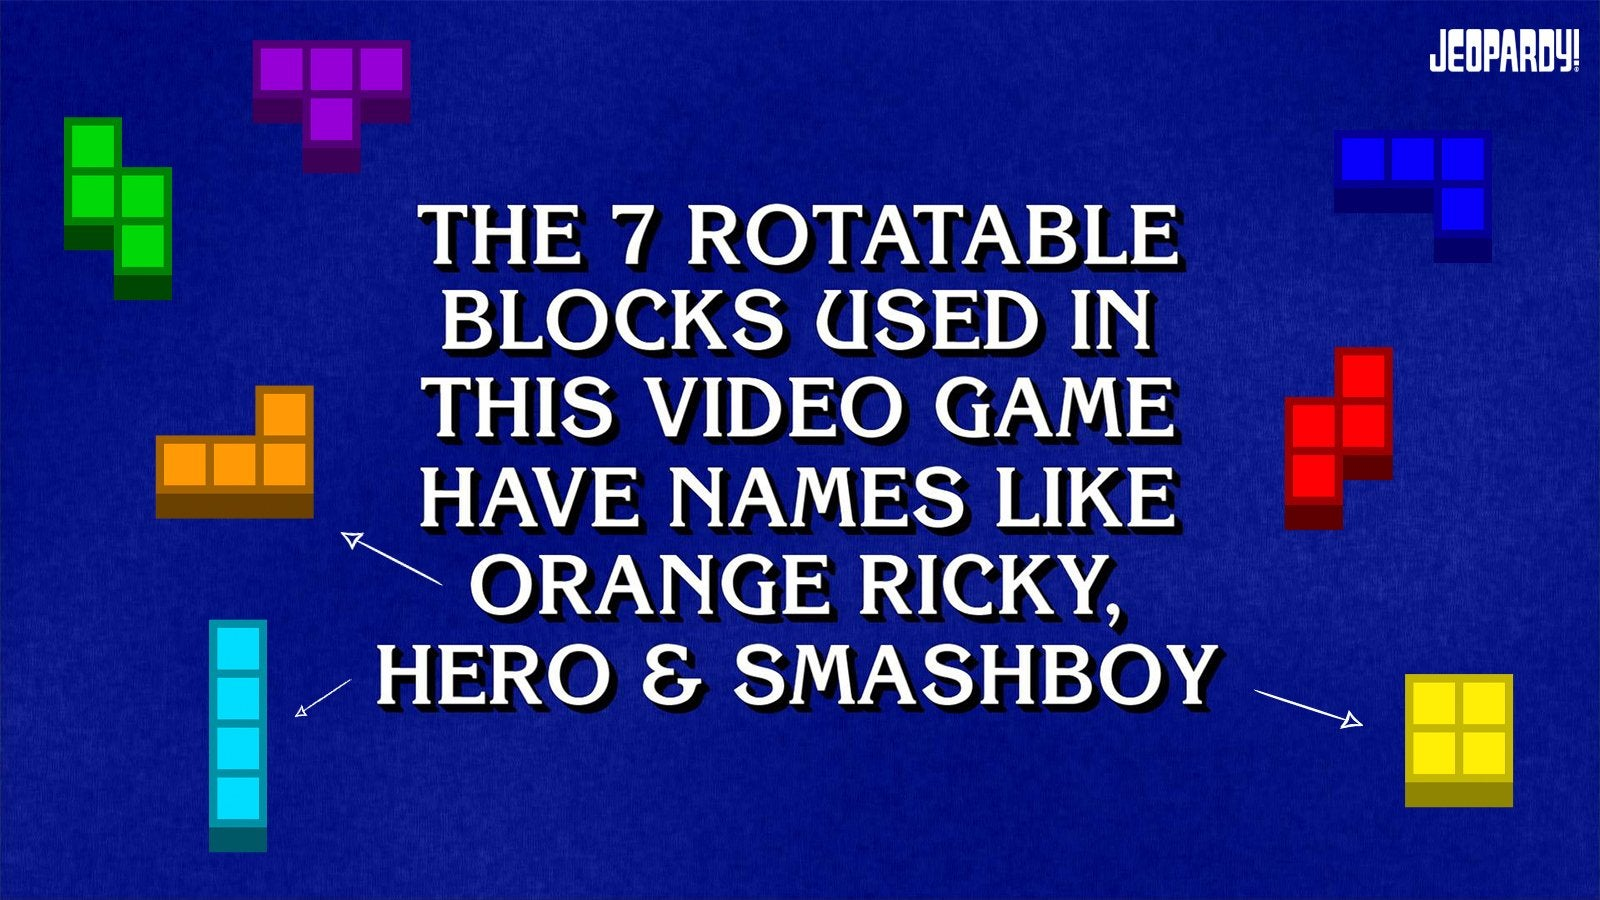 Jeopardy! Airs A Hilariously Incorrect Bit Of Tetris Trivia